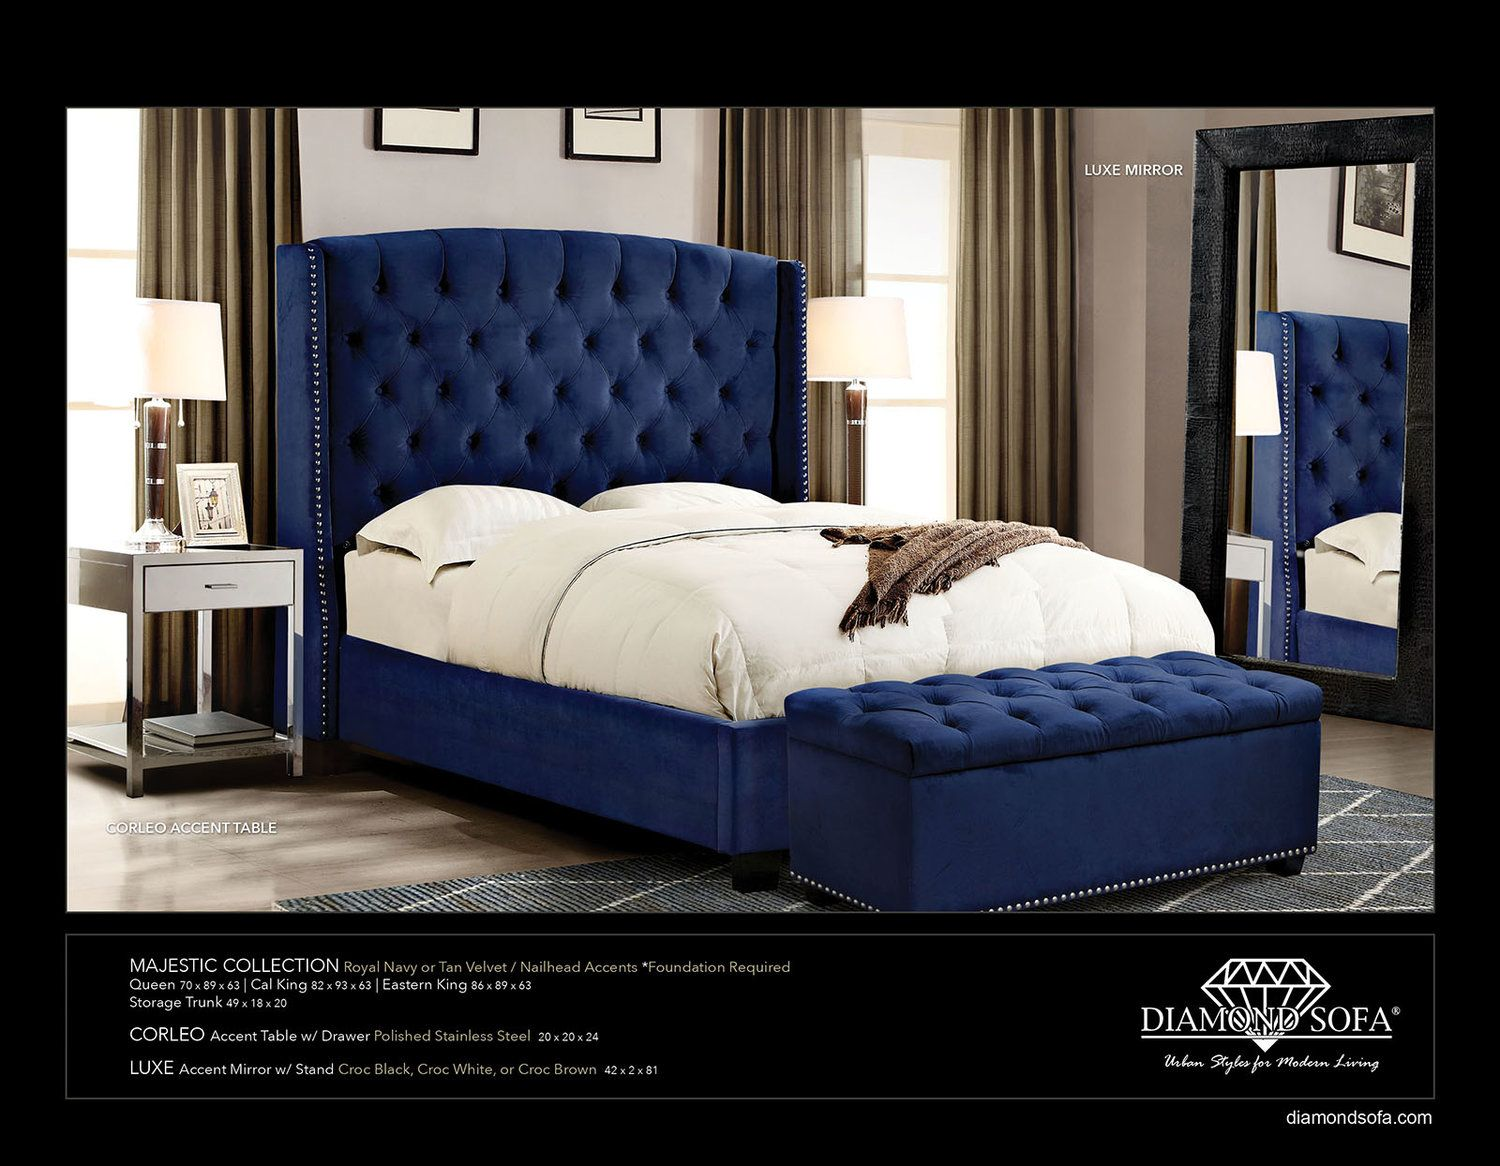 Majestic Collection Royal Navy Tufted Bed Tufted Headboard